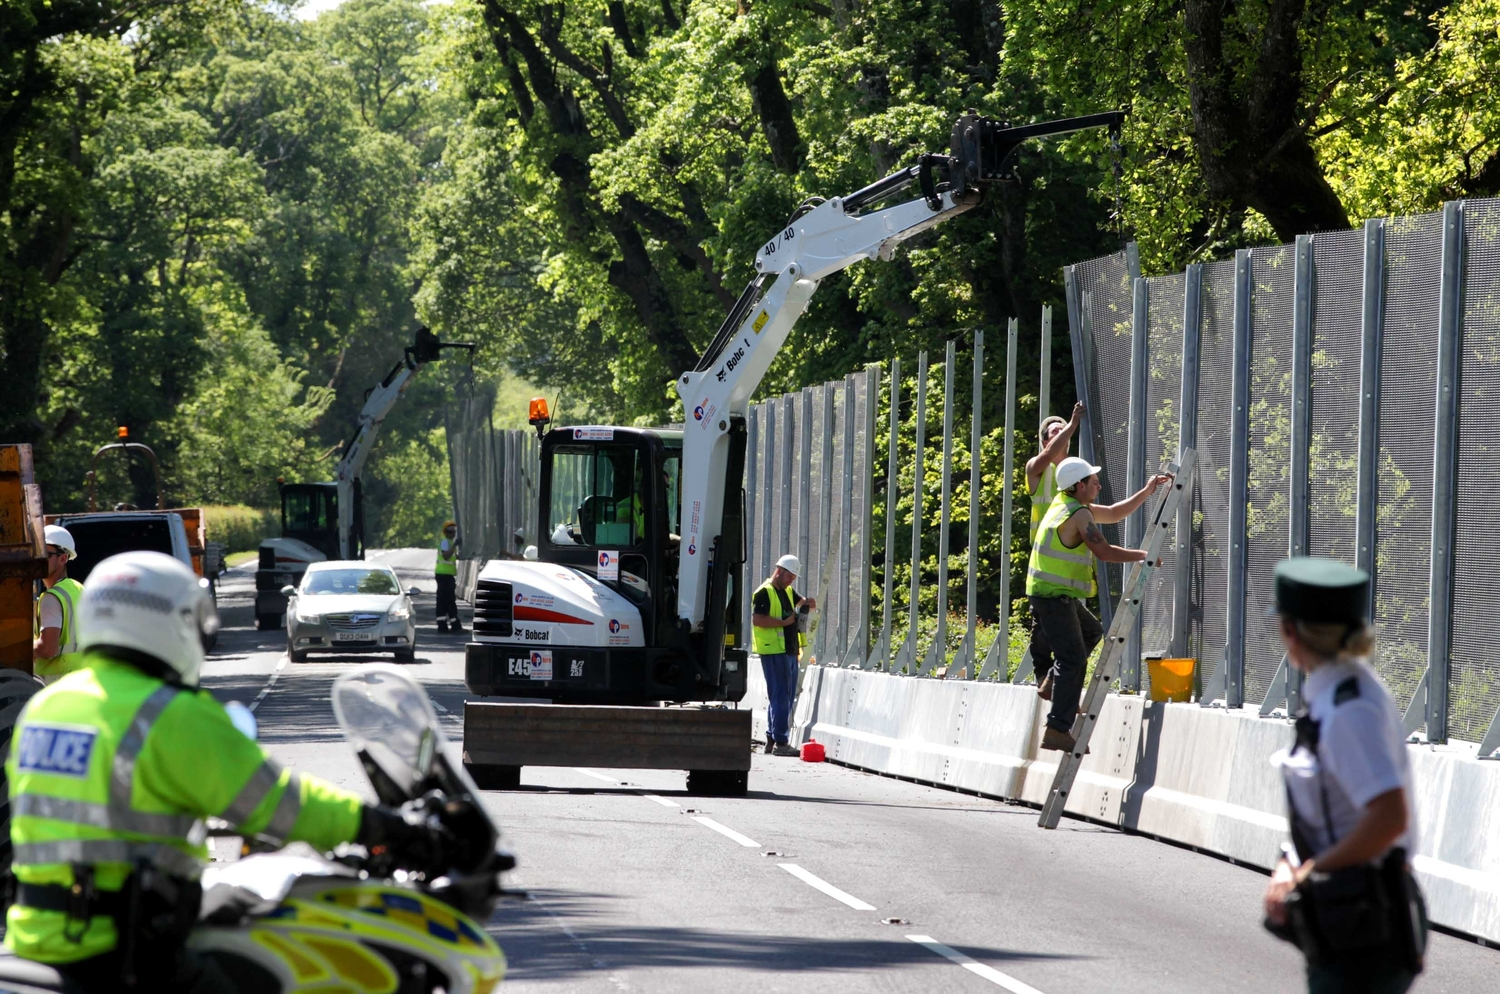 Police watch as a security fence is put in place at the Lough Erne resort for the G8 summit.